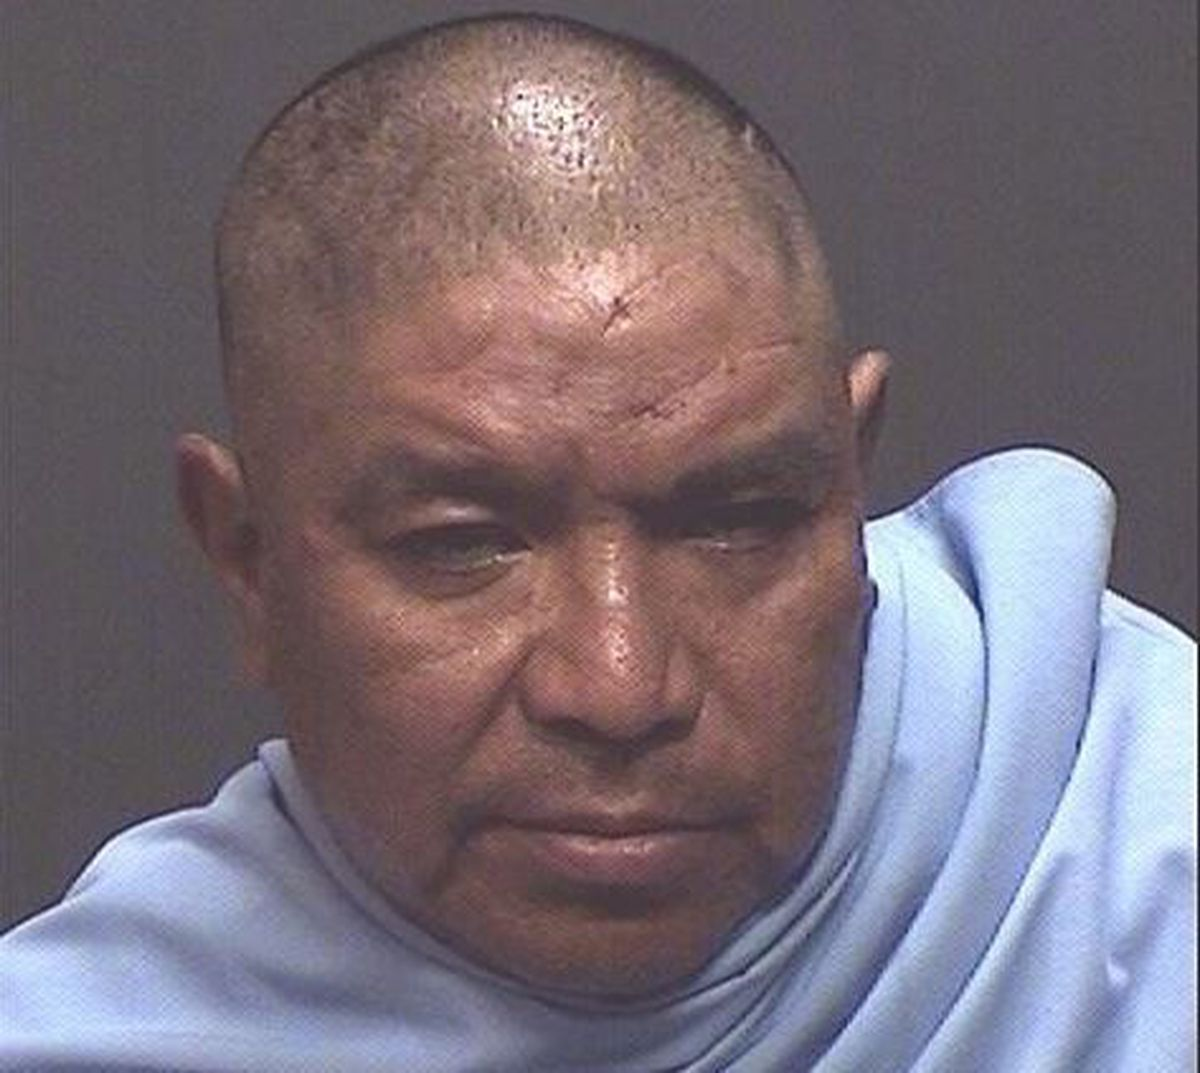 Shooting Reported At Arapahoe High School All Elizabeth: Tucson Police Release Name Of Man Killed In Midtown Shooting